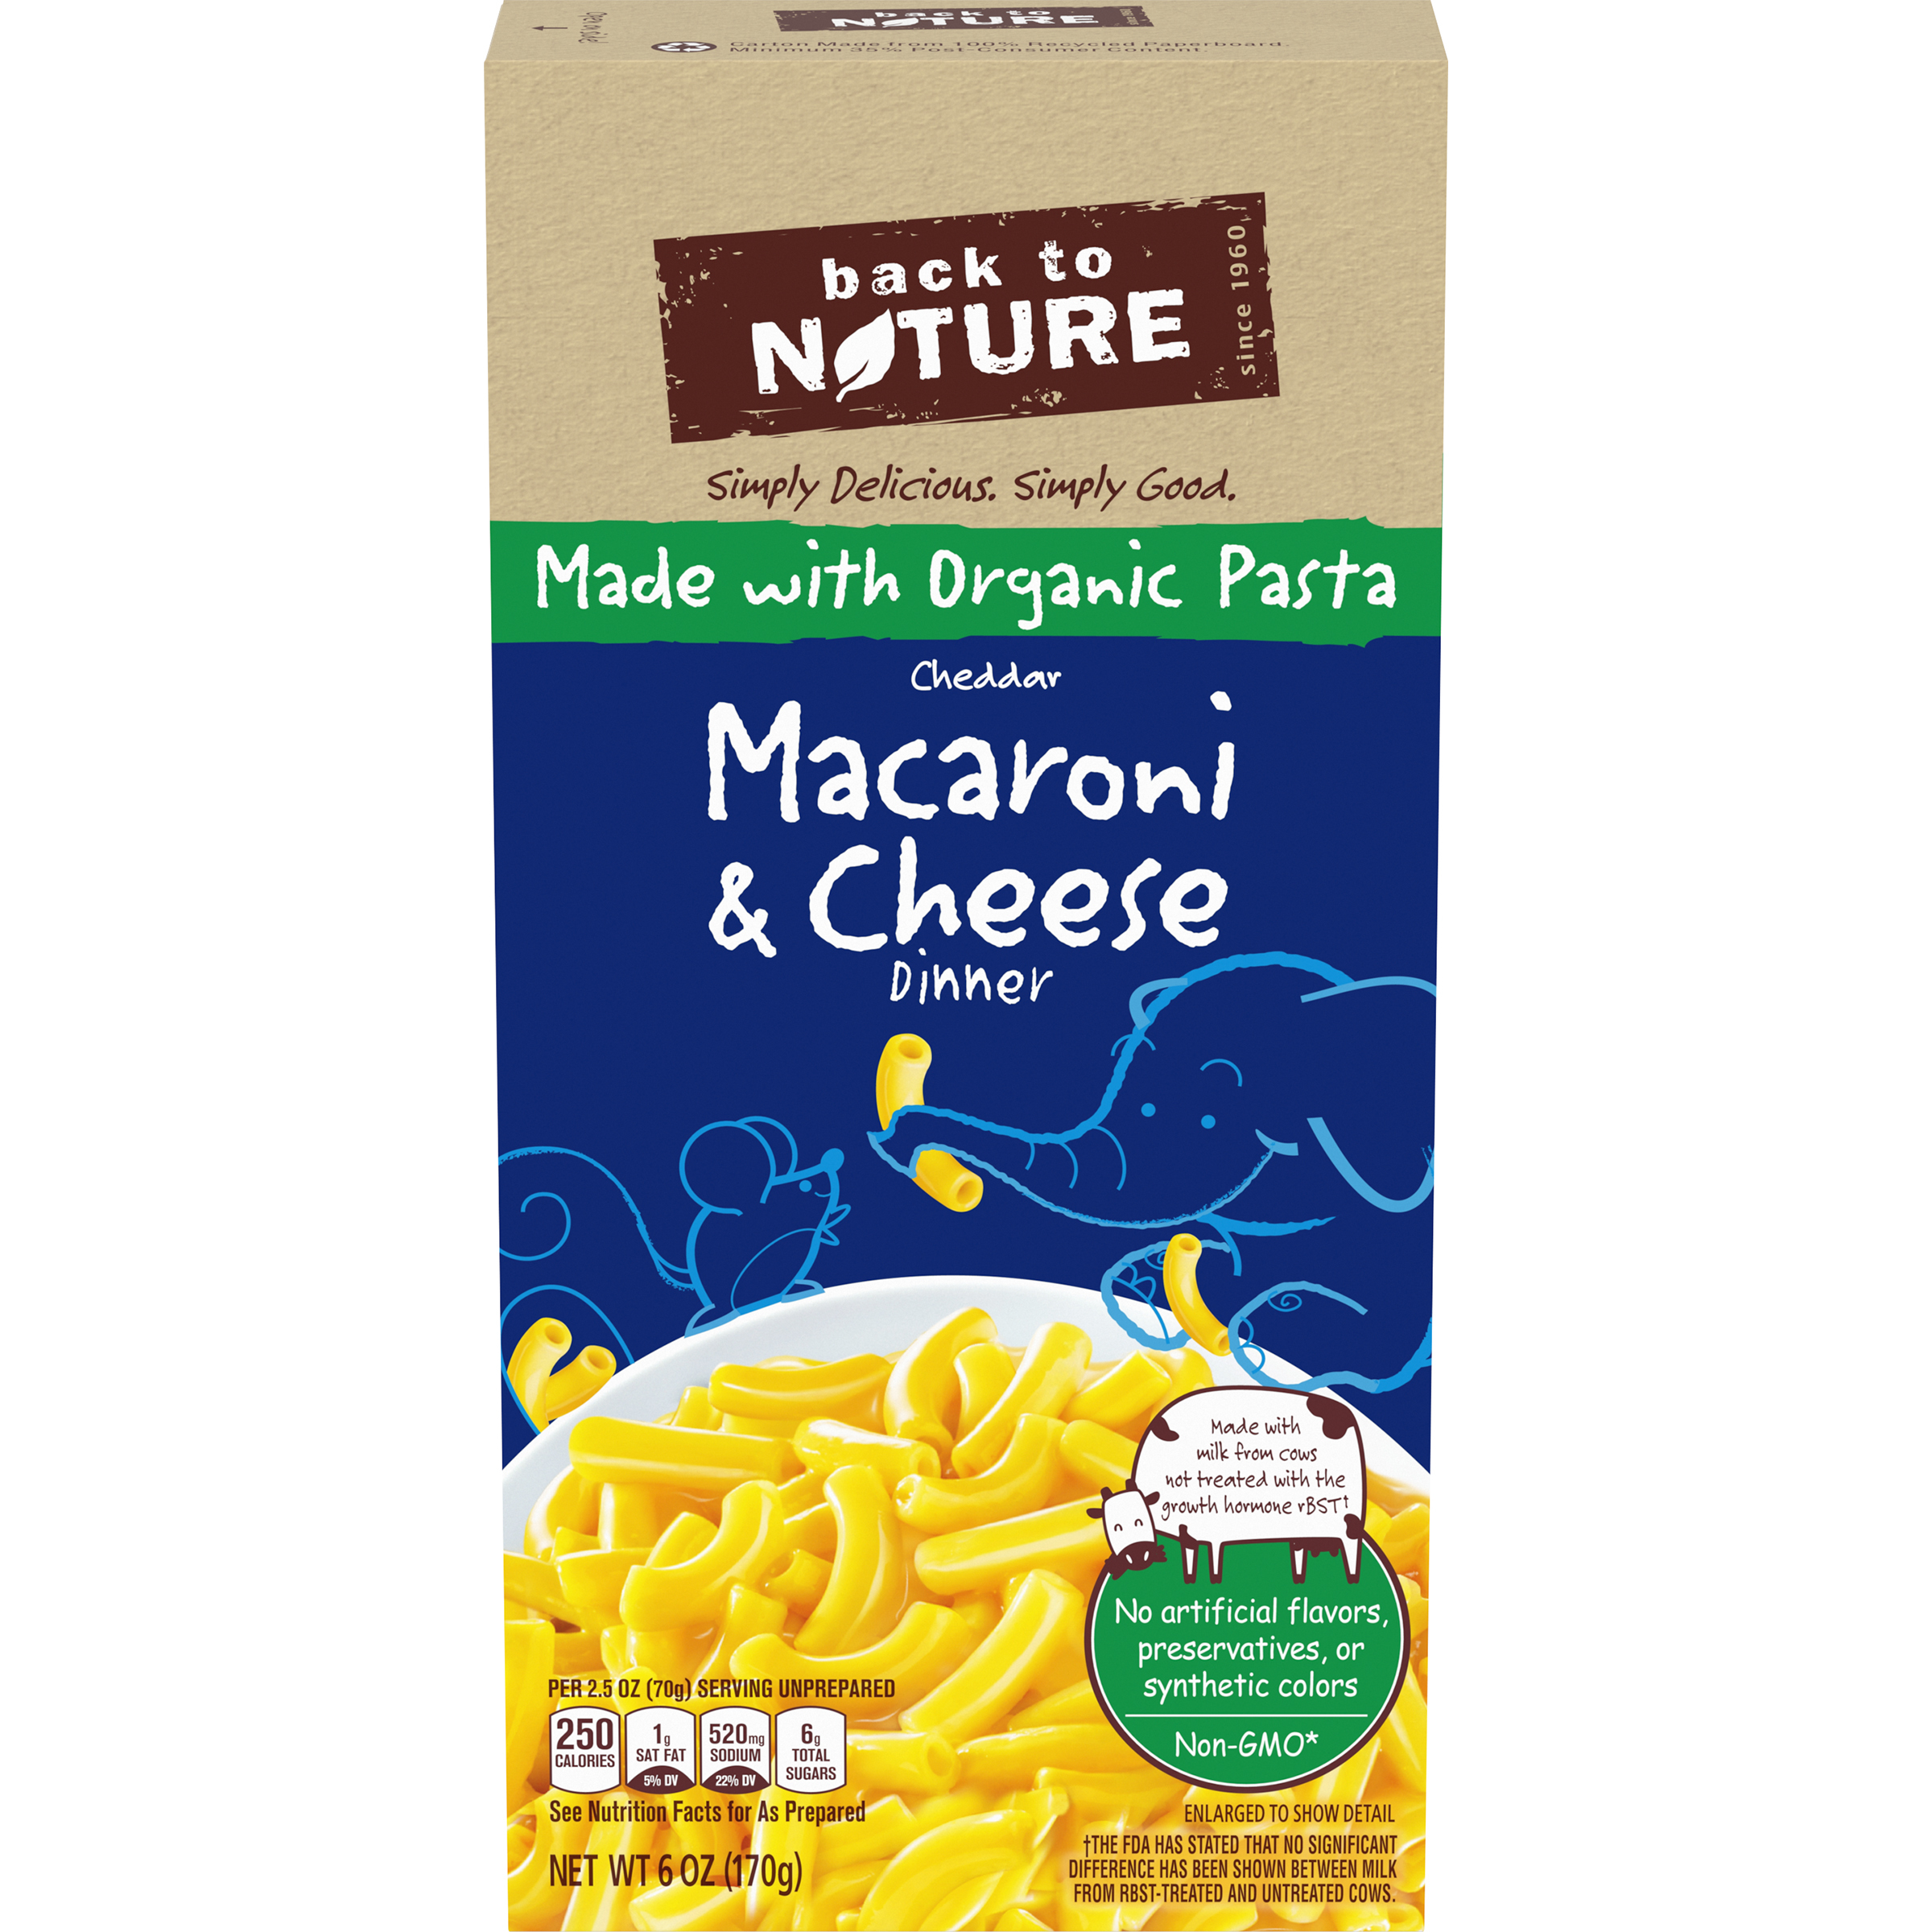 BACK TO NATURE Cheddar Macaroni & Cheese Dinner made with Organic Pasta 6 oz Box